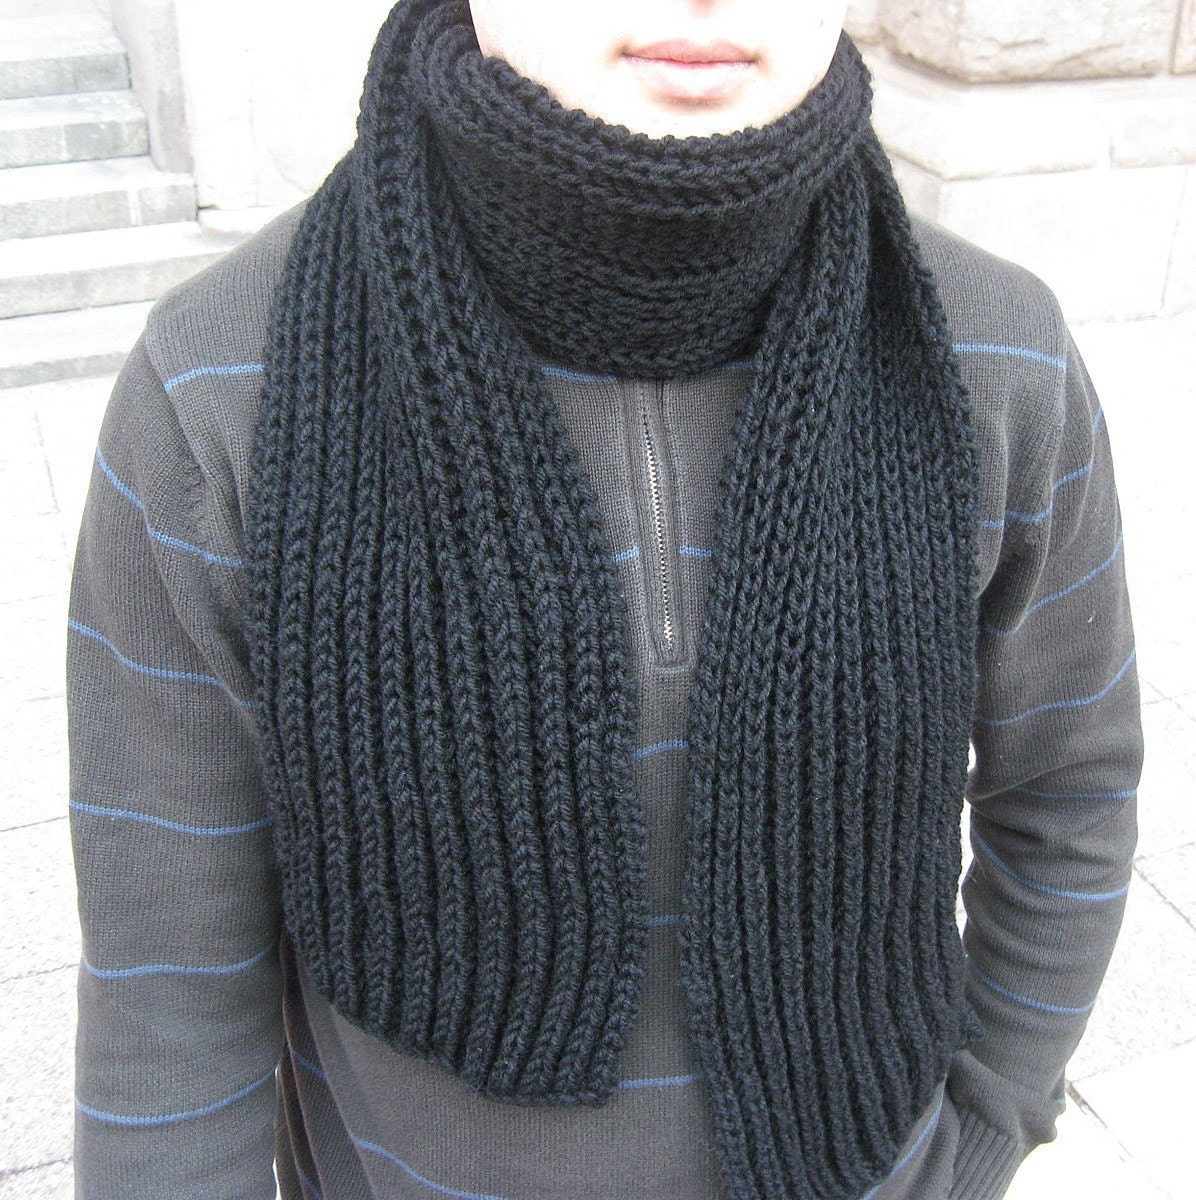 Knitting Scarf Patterns For Men : A young Manly Patterns Knitted Scarves For Men Free